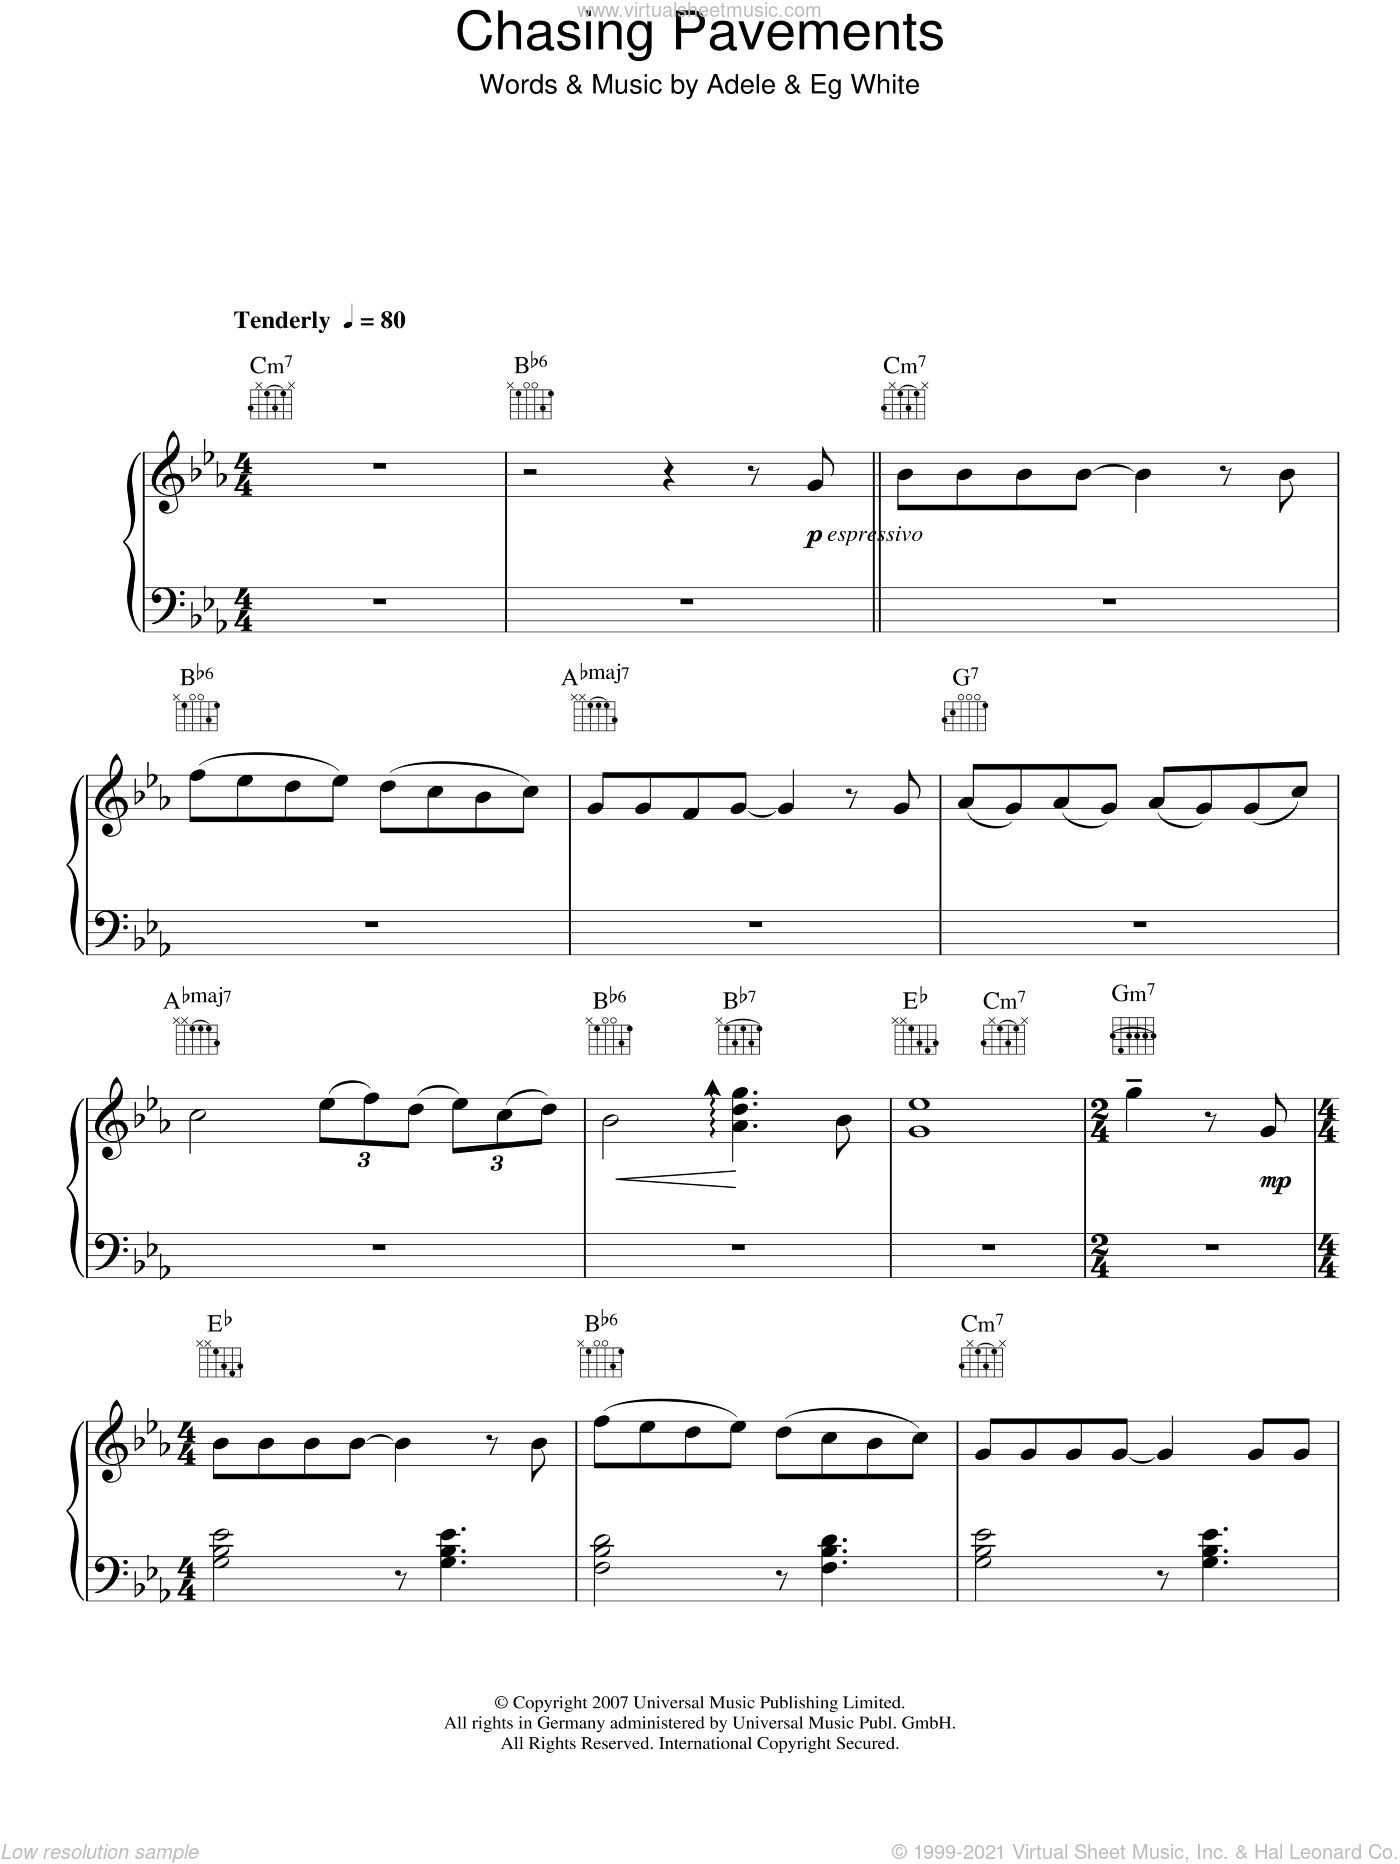 Chasing Pavements sheet music for piano solo by Adele and Eg White, easy skill level